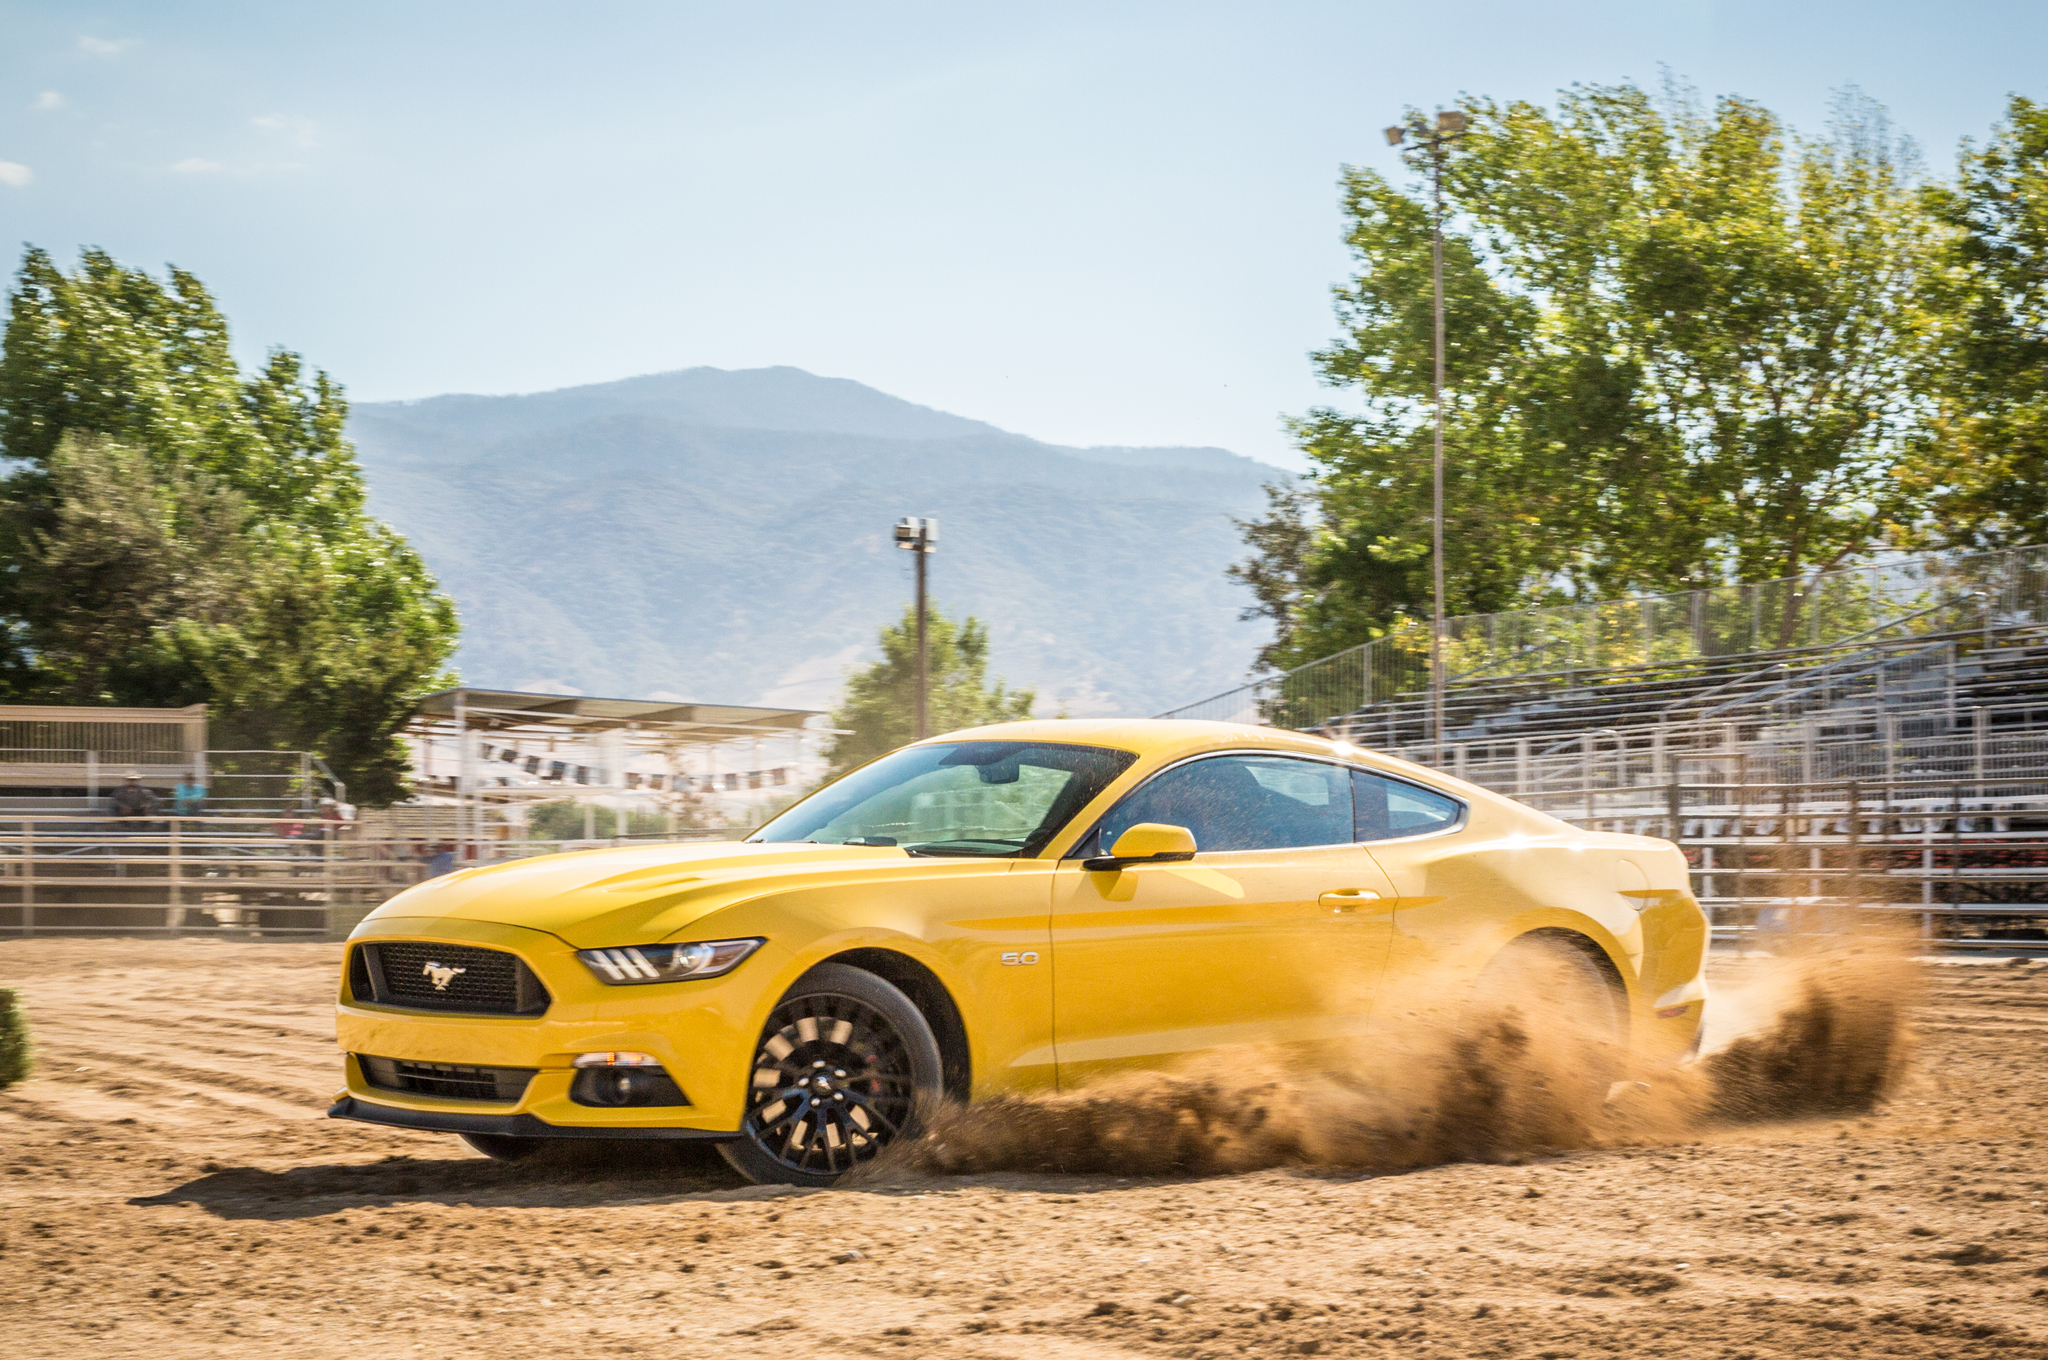 One bright spot for the Mustang is its high-end interior, which is noticeably better than the Chevy's.